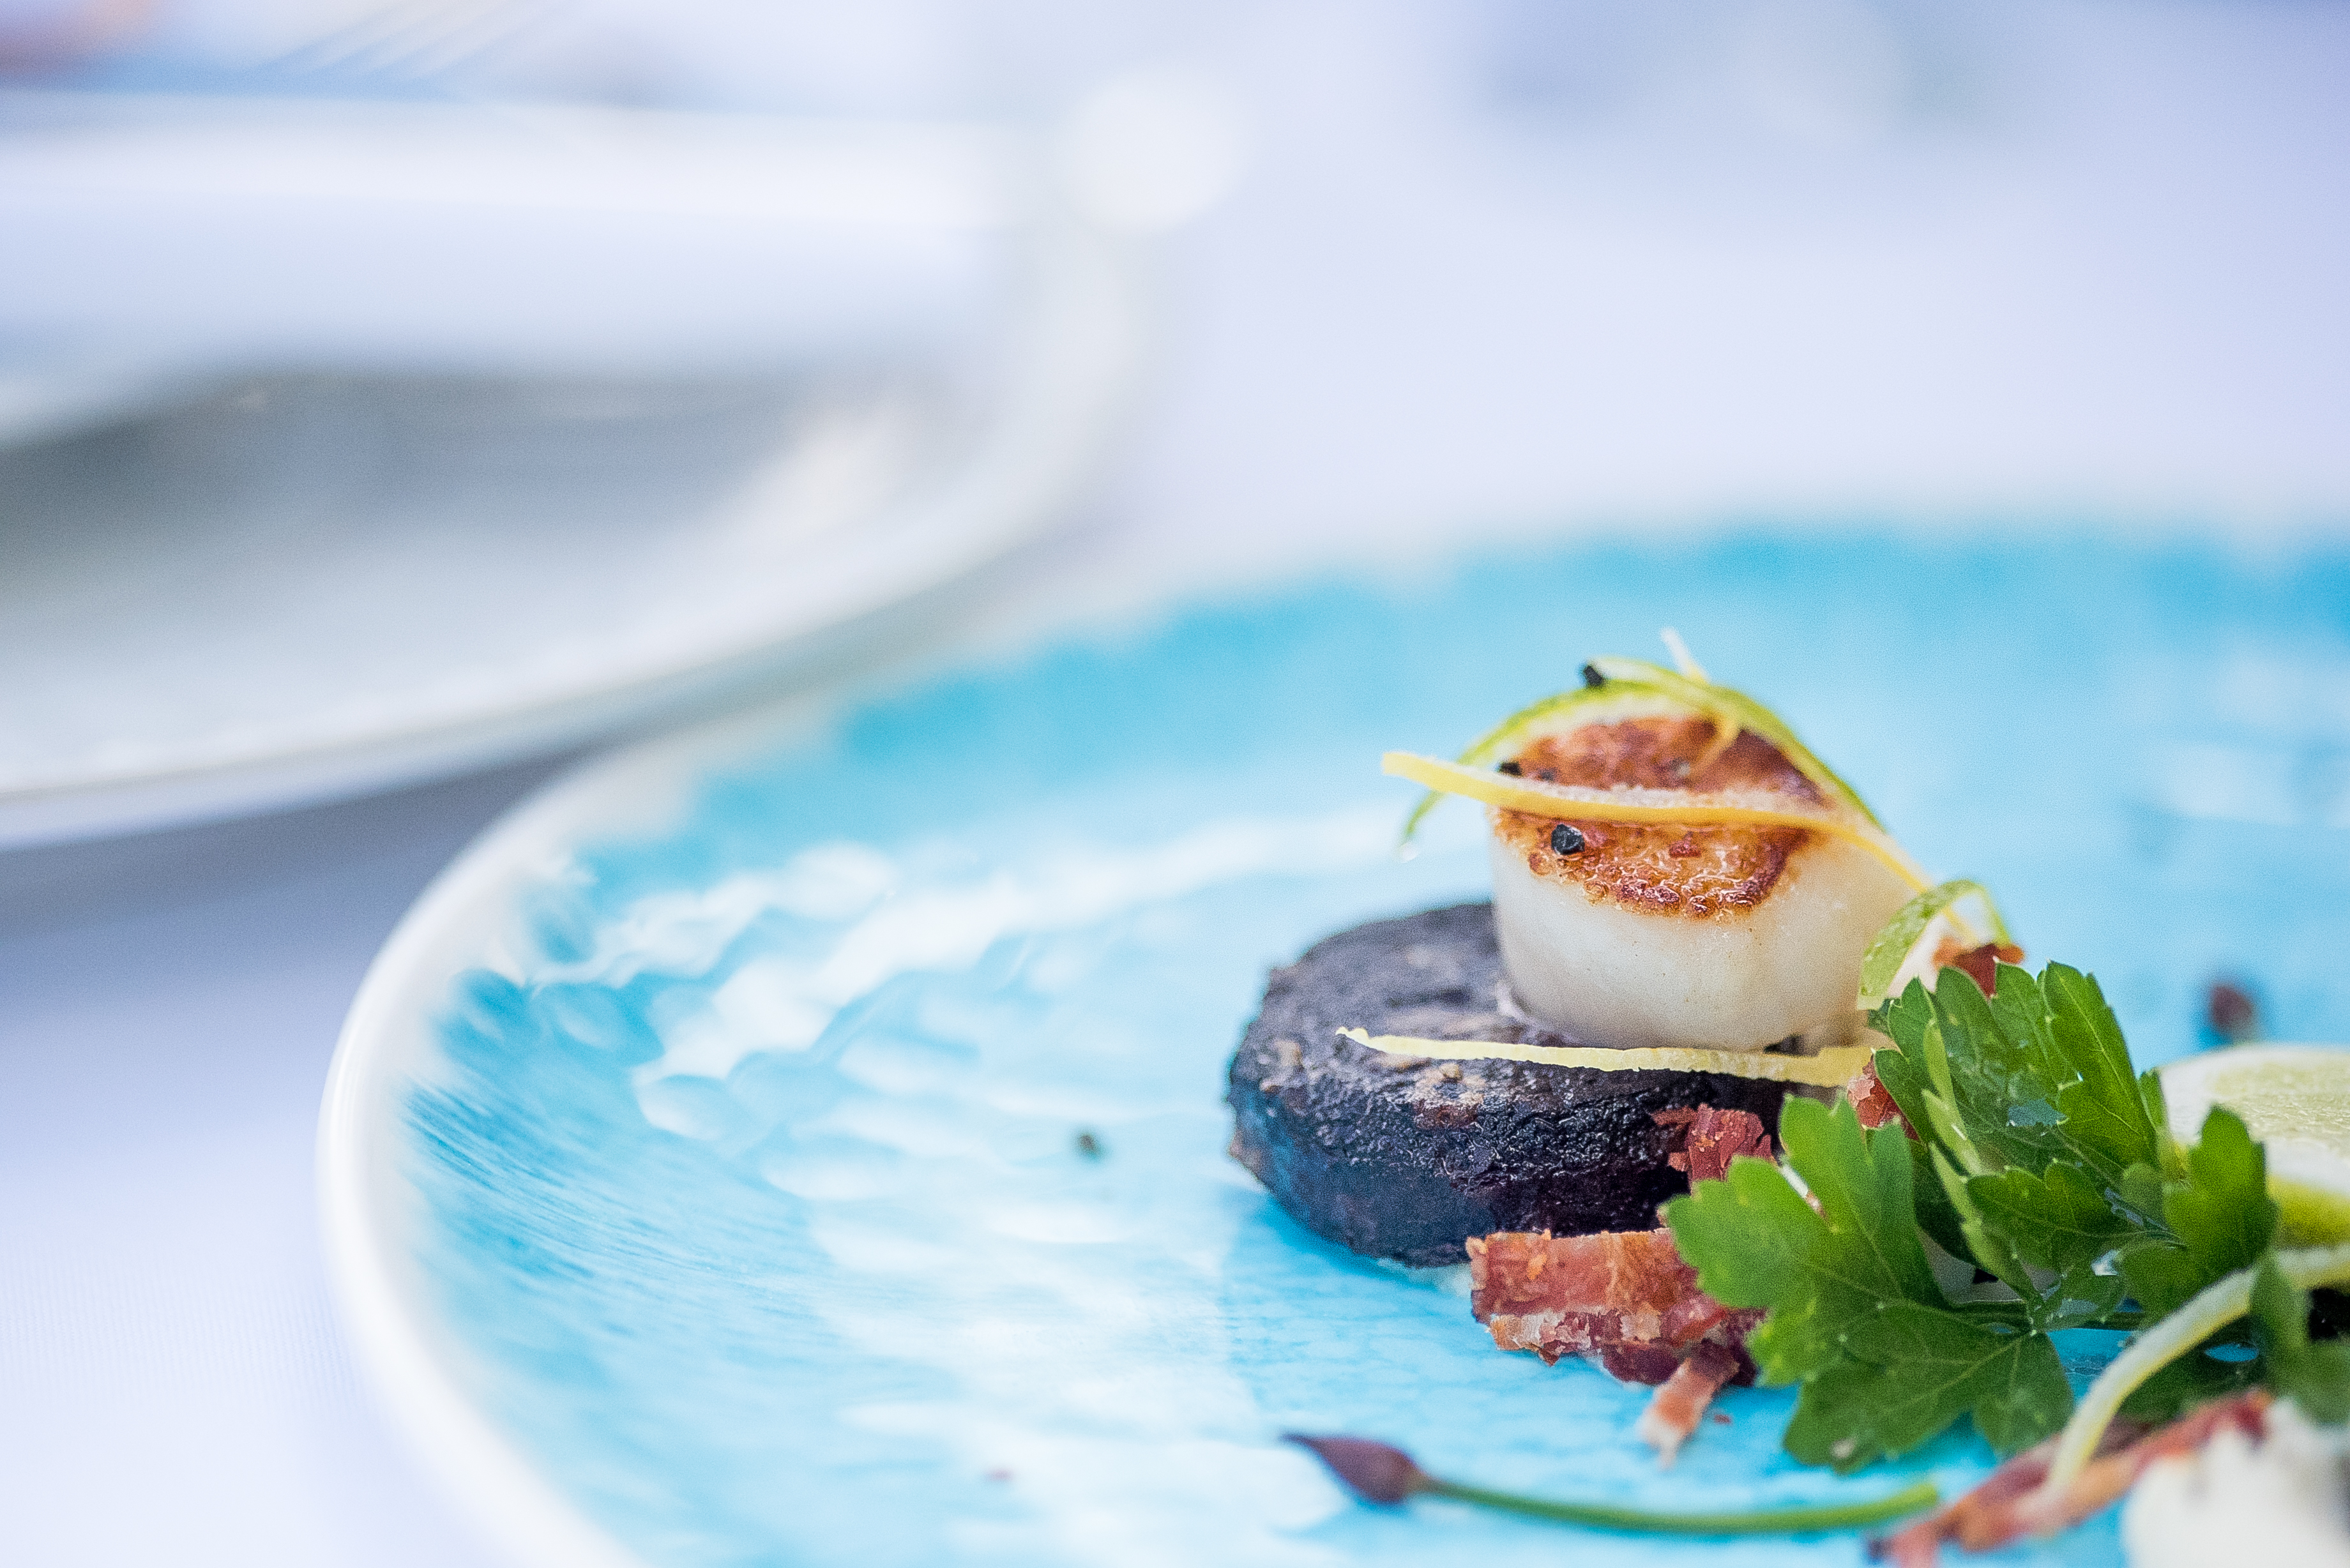 Kent Food Photographer - black pudding and scallop